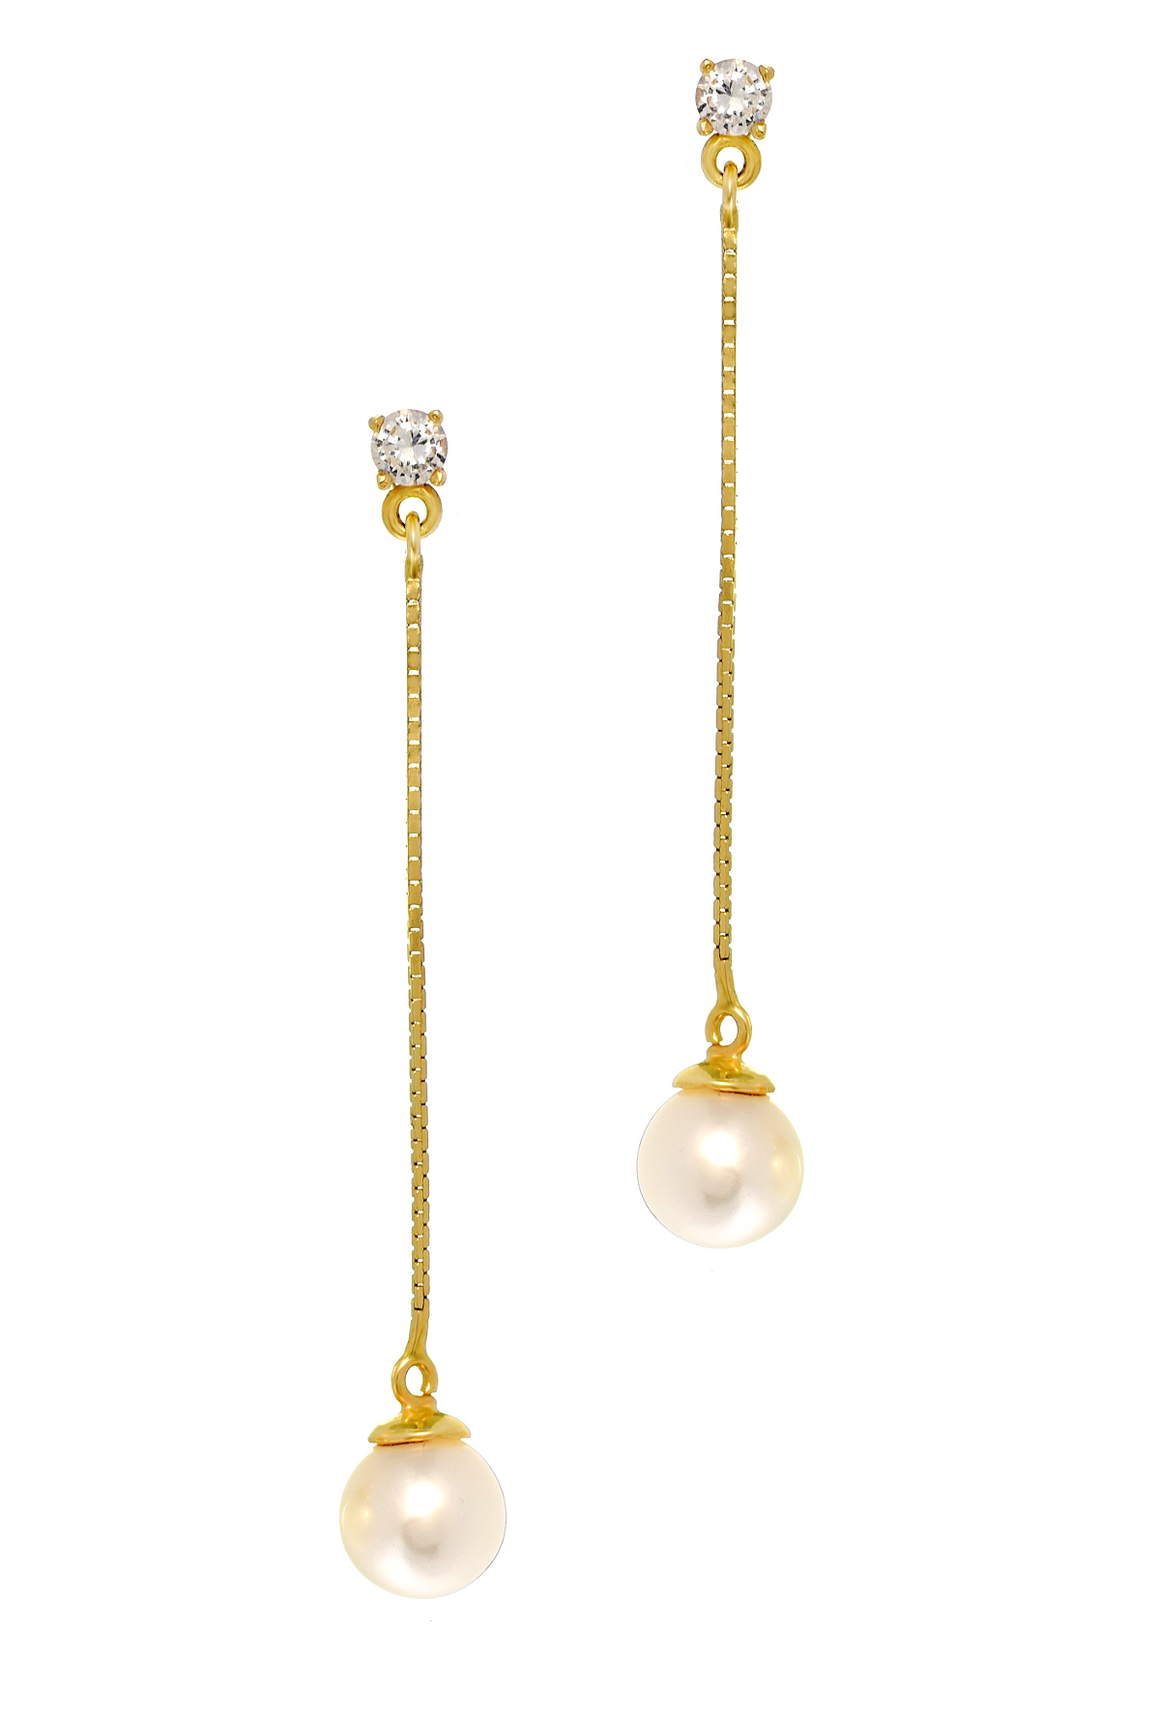 14K Yellow Gold Pearl Drop Earrings with CZ Stone - Anny Gabriella NY